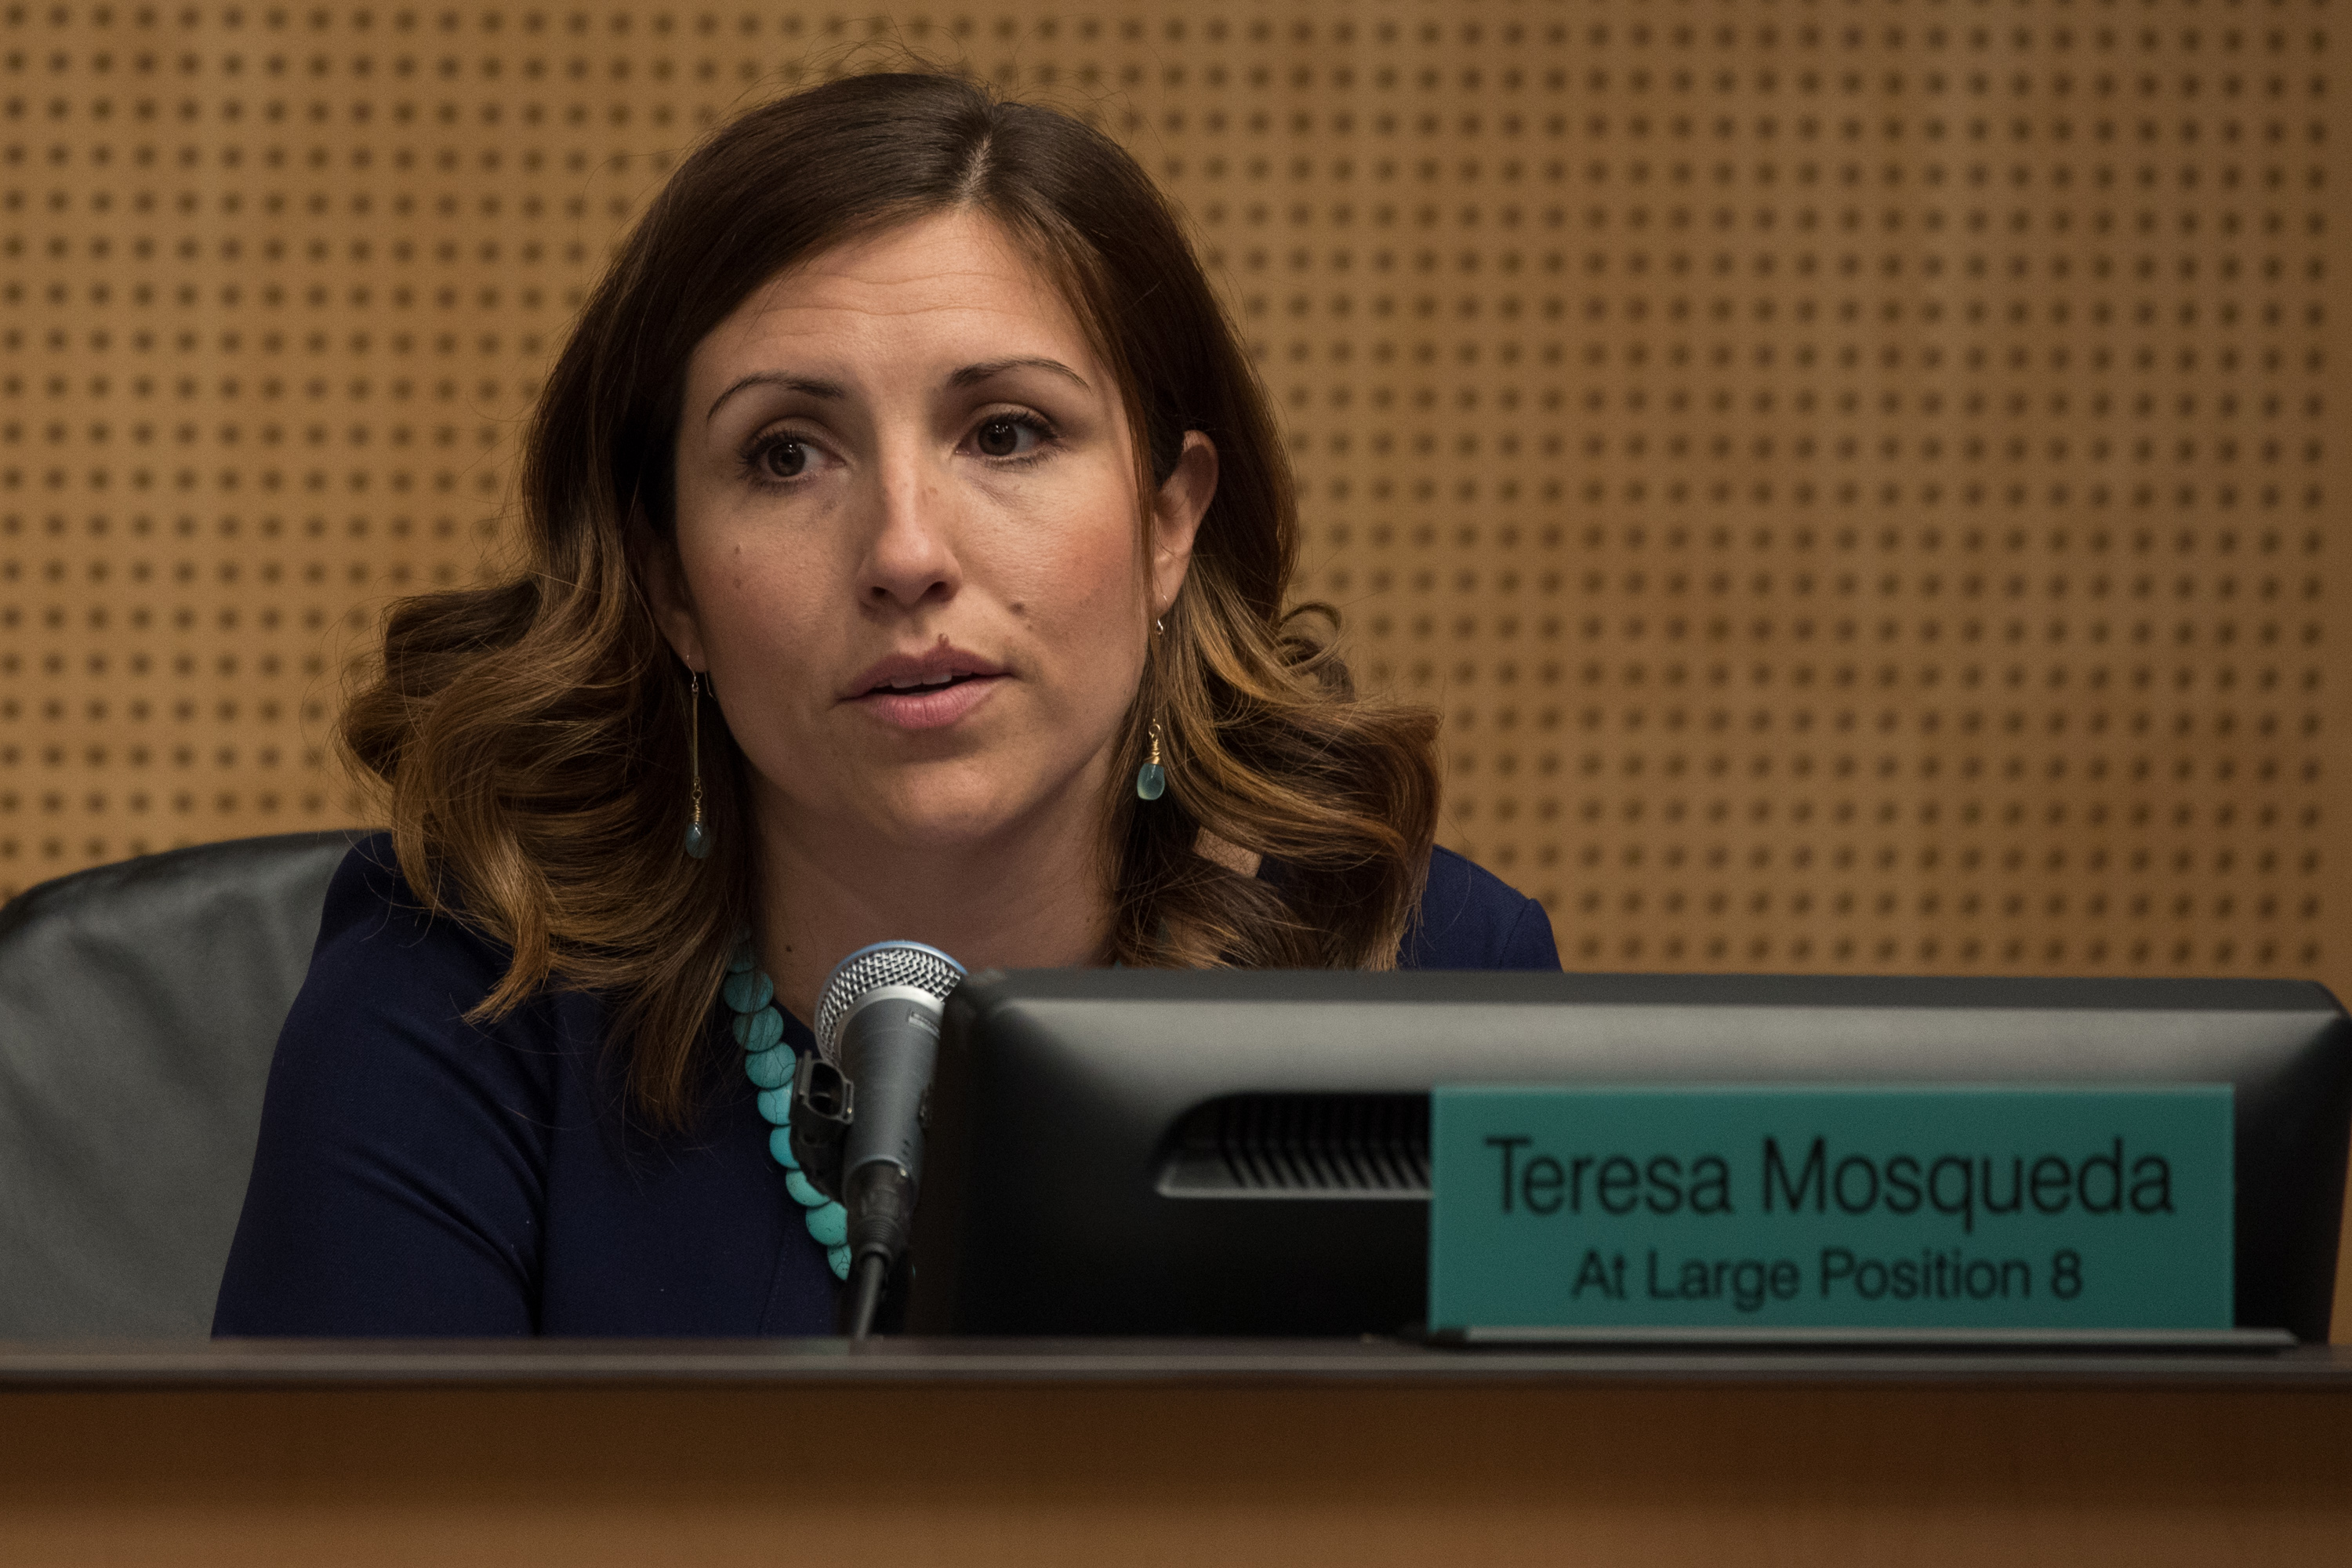 Seattle City Councilmember Teresa Mosqueda during a vote to repeal the head tax at City Hall in Seattle, June 12, 2018. (Photo by Matt M. McKnight)